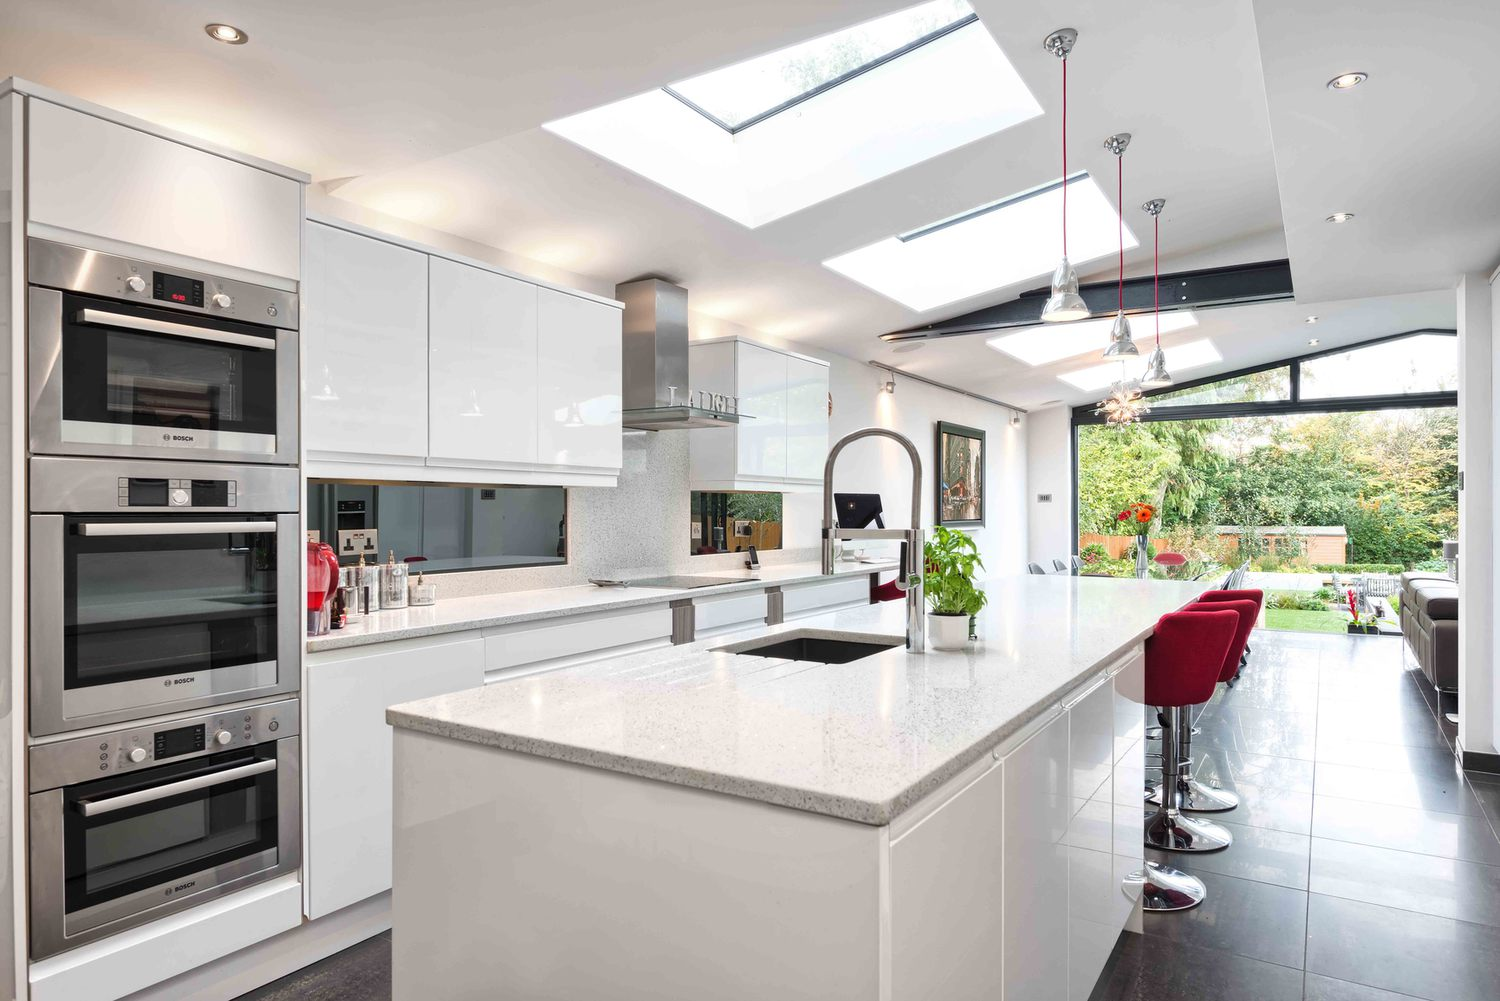 Kitchen view of a modern house extension by Harvey Norman Architects St Albans